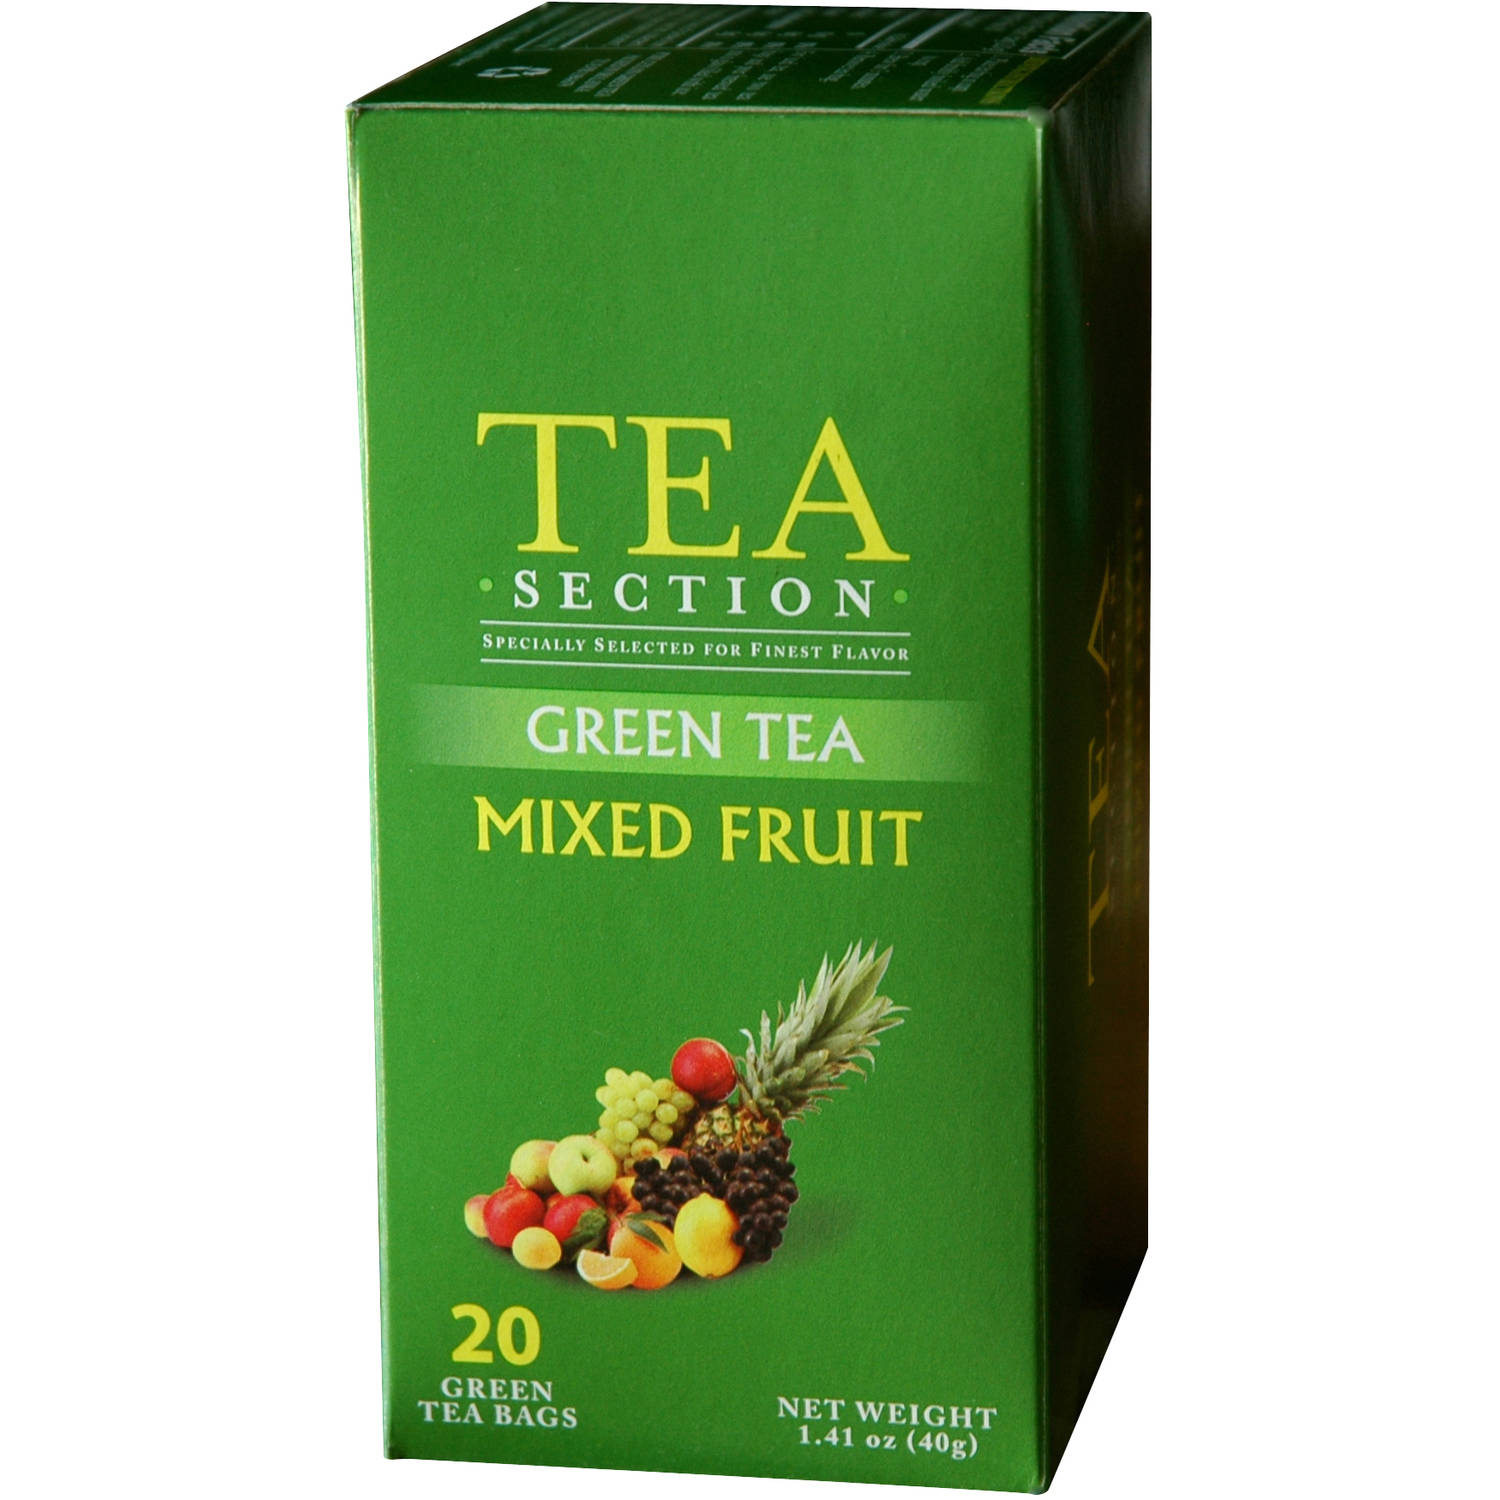 Tea Section Mixed Fruit Green Tea Bags, 20 count, 1.41 oz